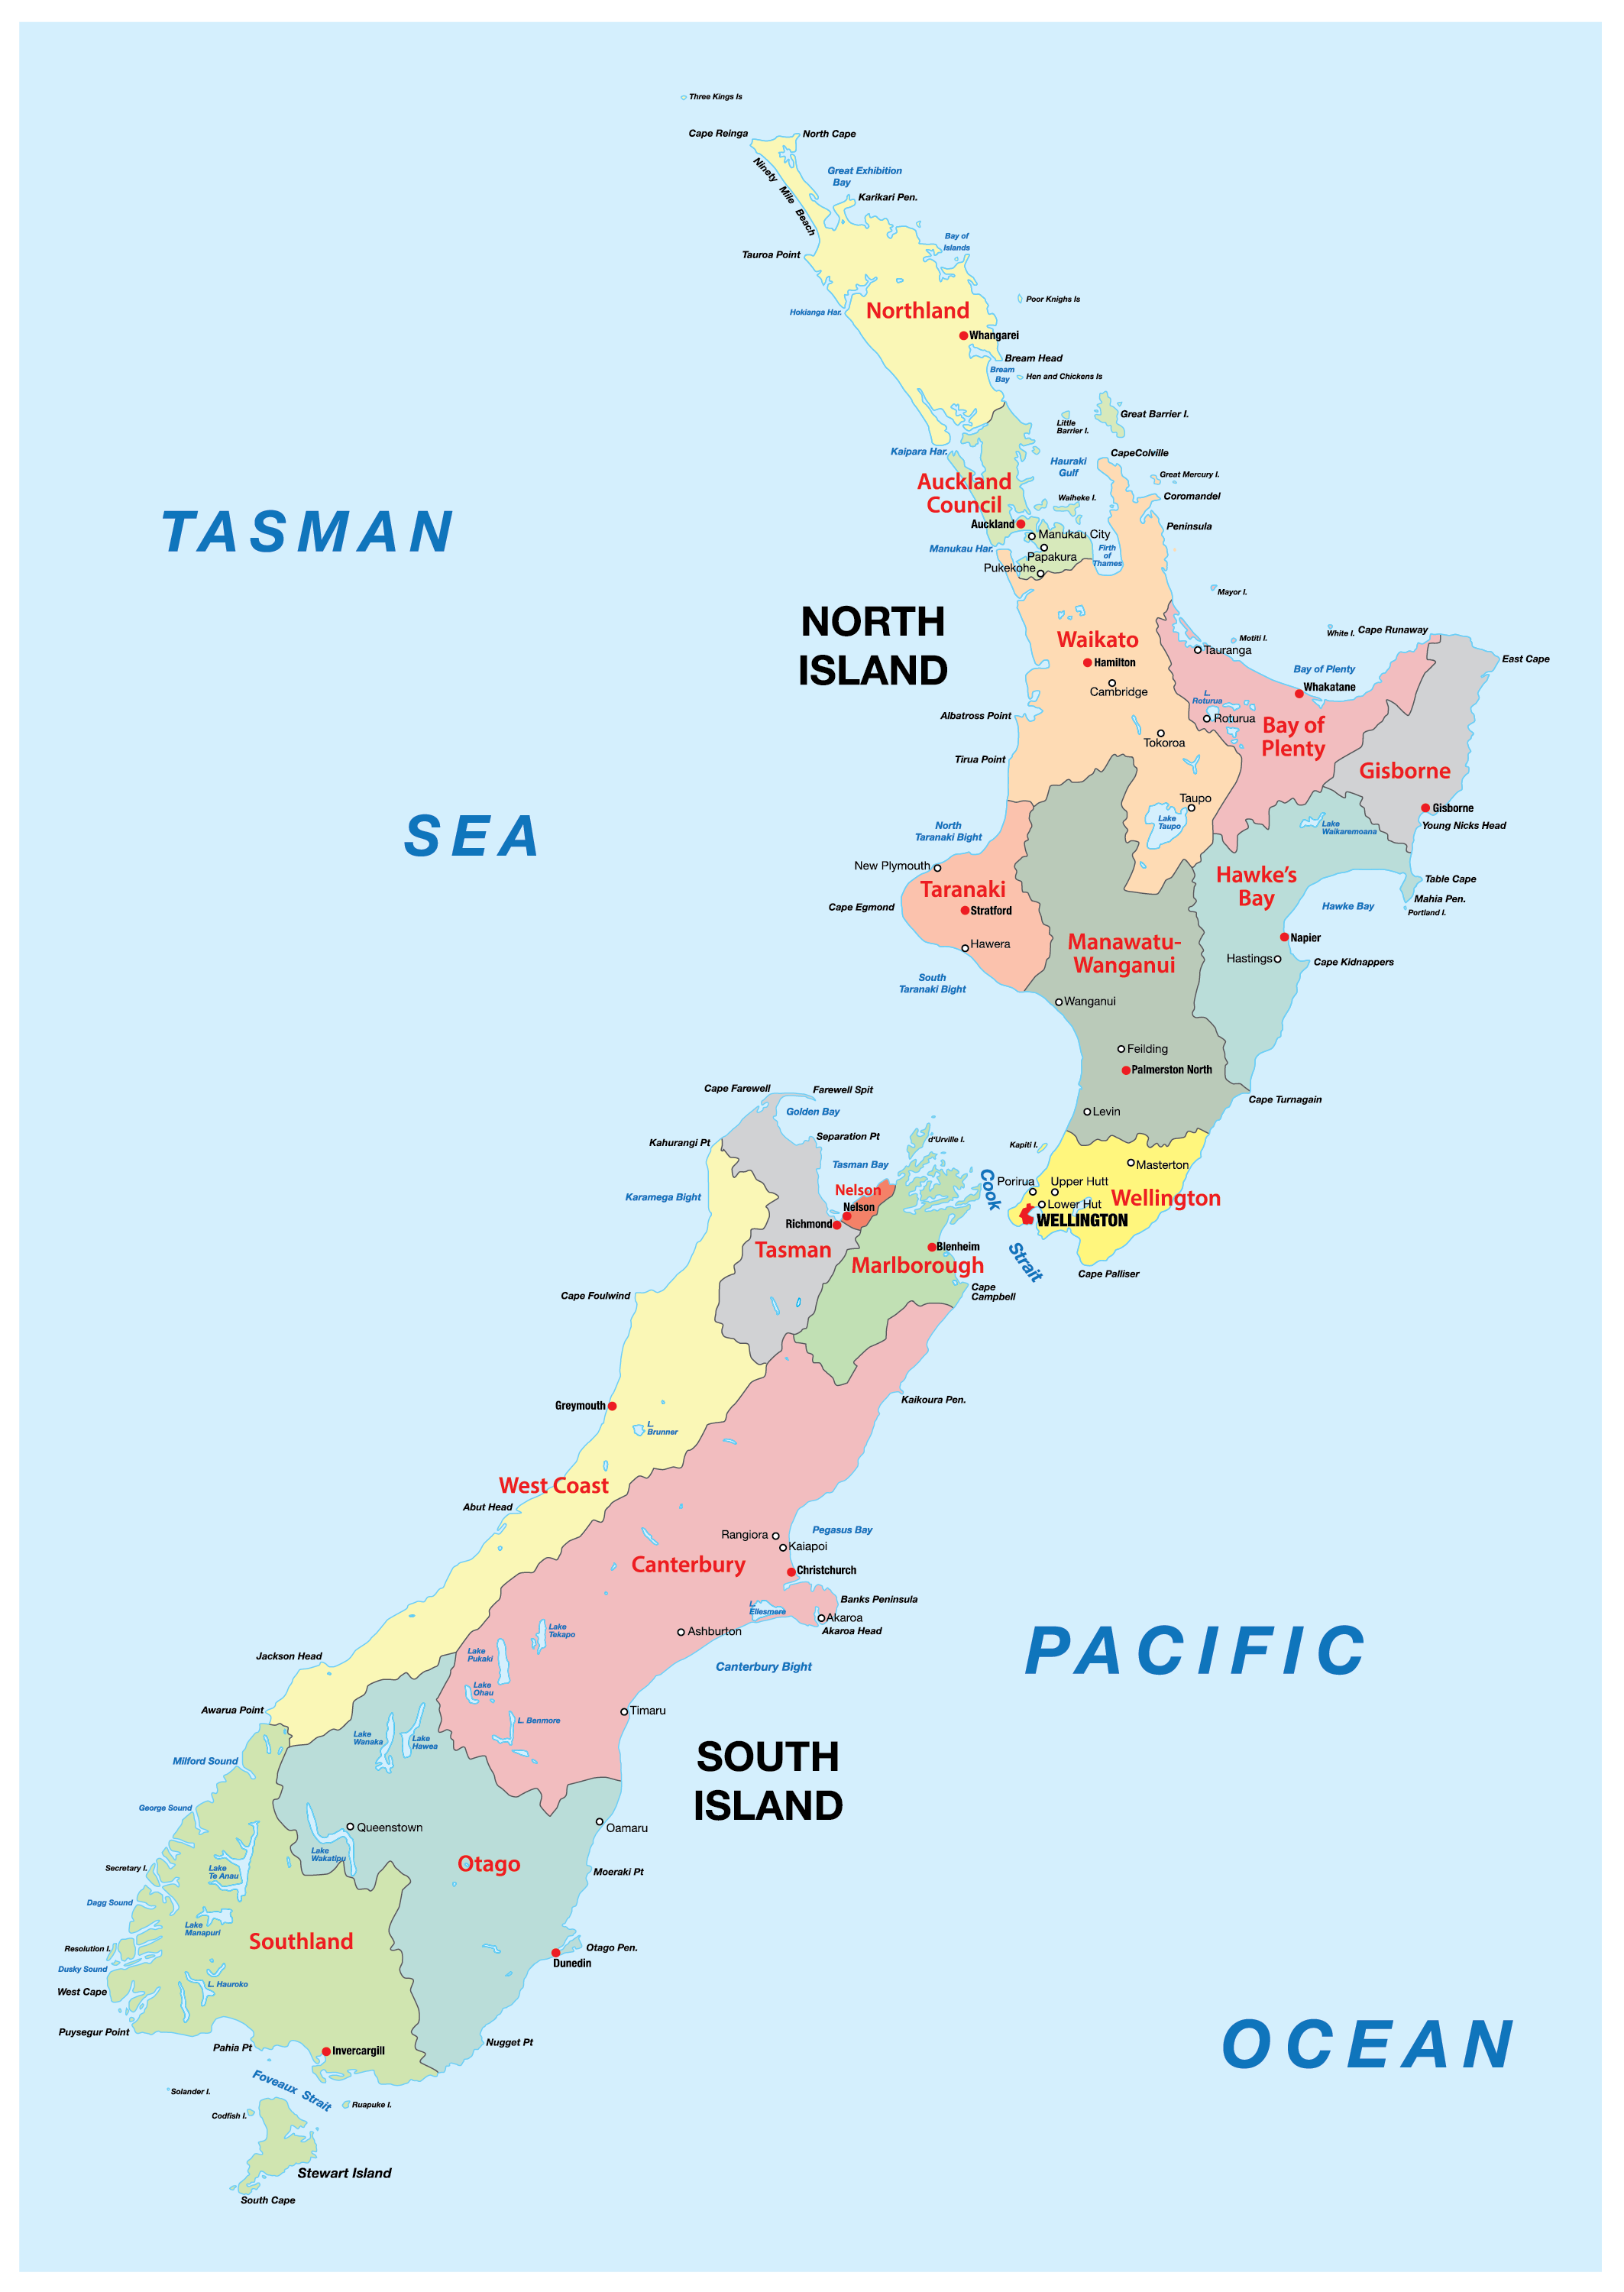 Political Map of New Zealand showing its 16 regions and 1 territorial authority and the capital city of Wellington